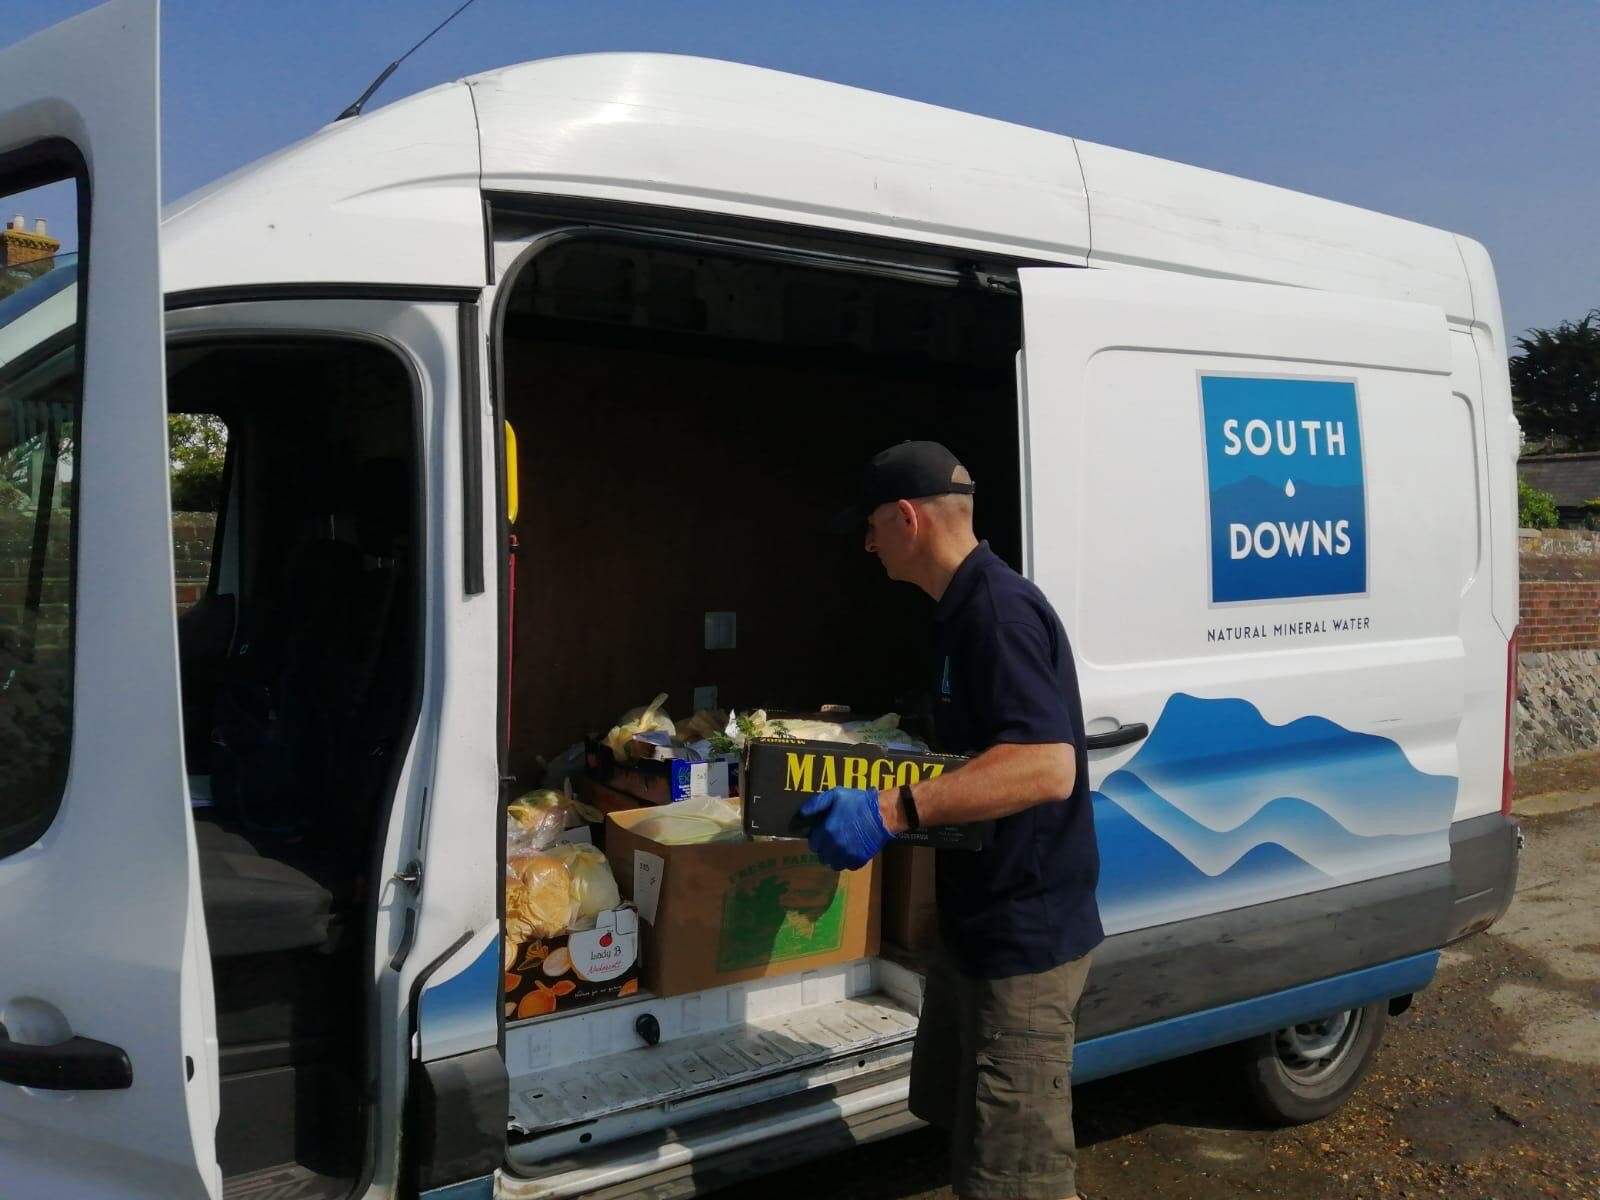 Above: We carried out more than 1200 Southbourne Farm Shop grocery deliveries in our local area between Chichester and Emsworth during the height of lockdown - prioritising NHS staff, over 70s and those needing to shield.